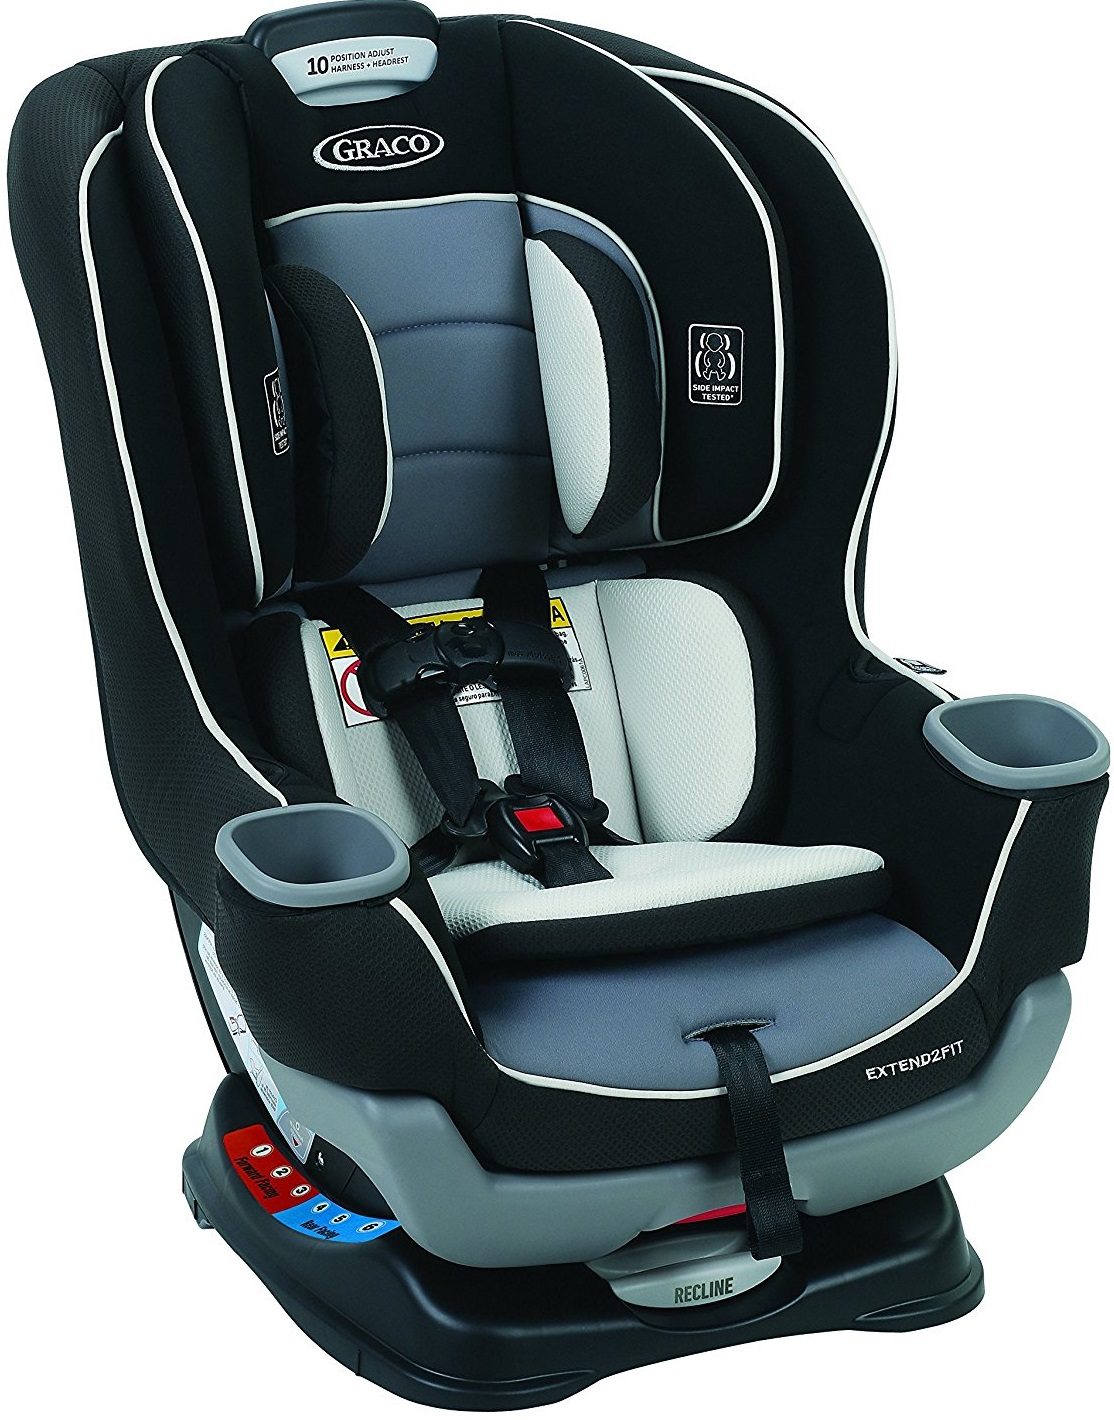 Charming Graco Vs Comparison Baby Insight Graco My Size 65 Cleaning Instructions Graco Mysize 65 Convertible Car Seat Manual baby Graco My Size 65